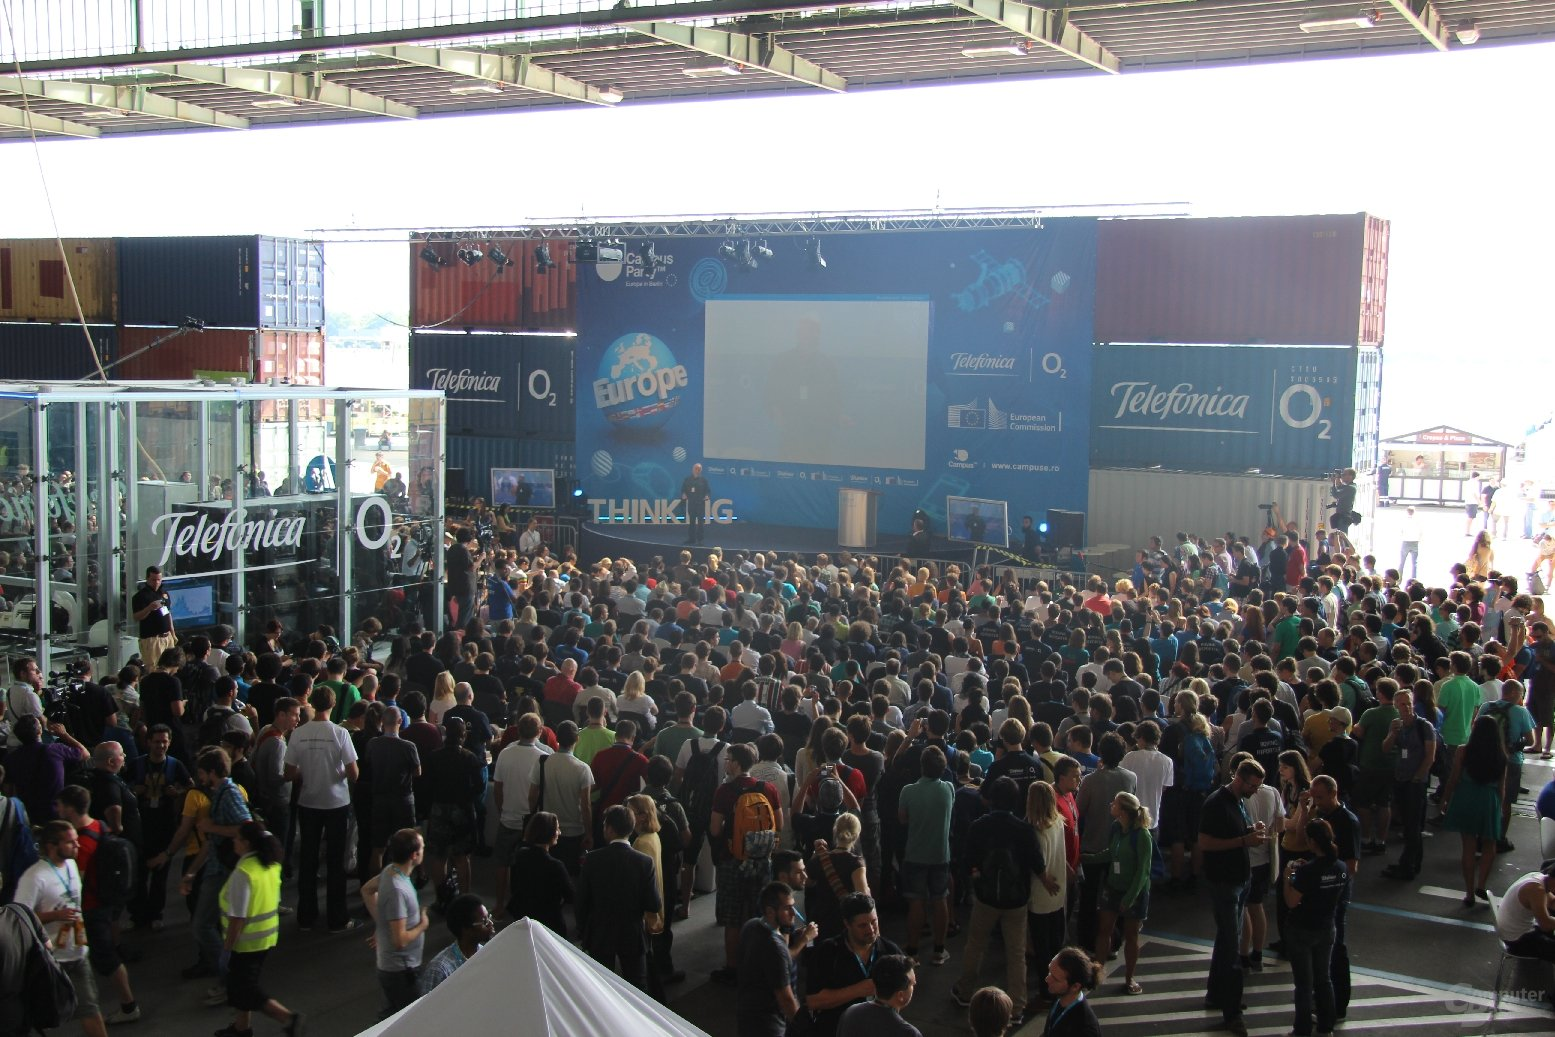 Campus Party Europe 2012 in Berlin